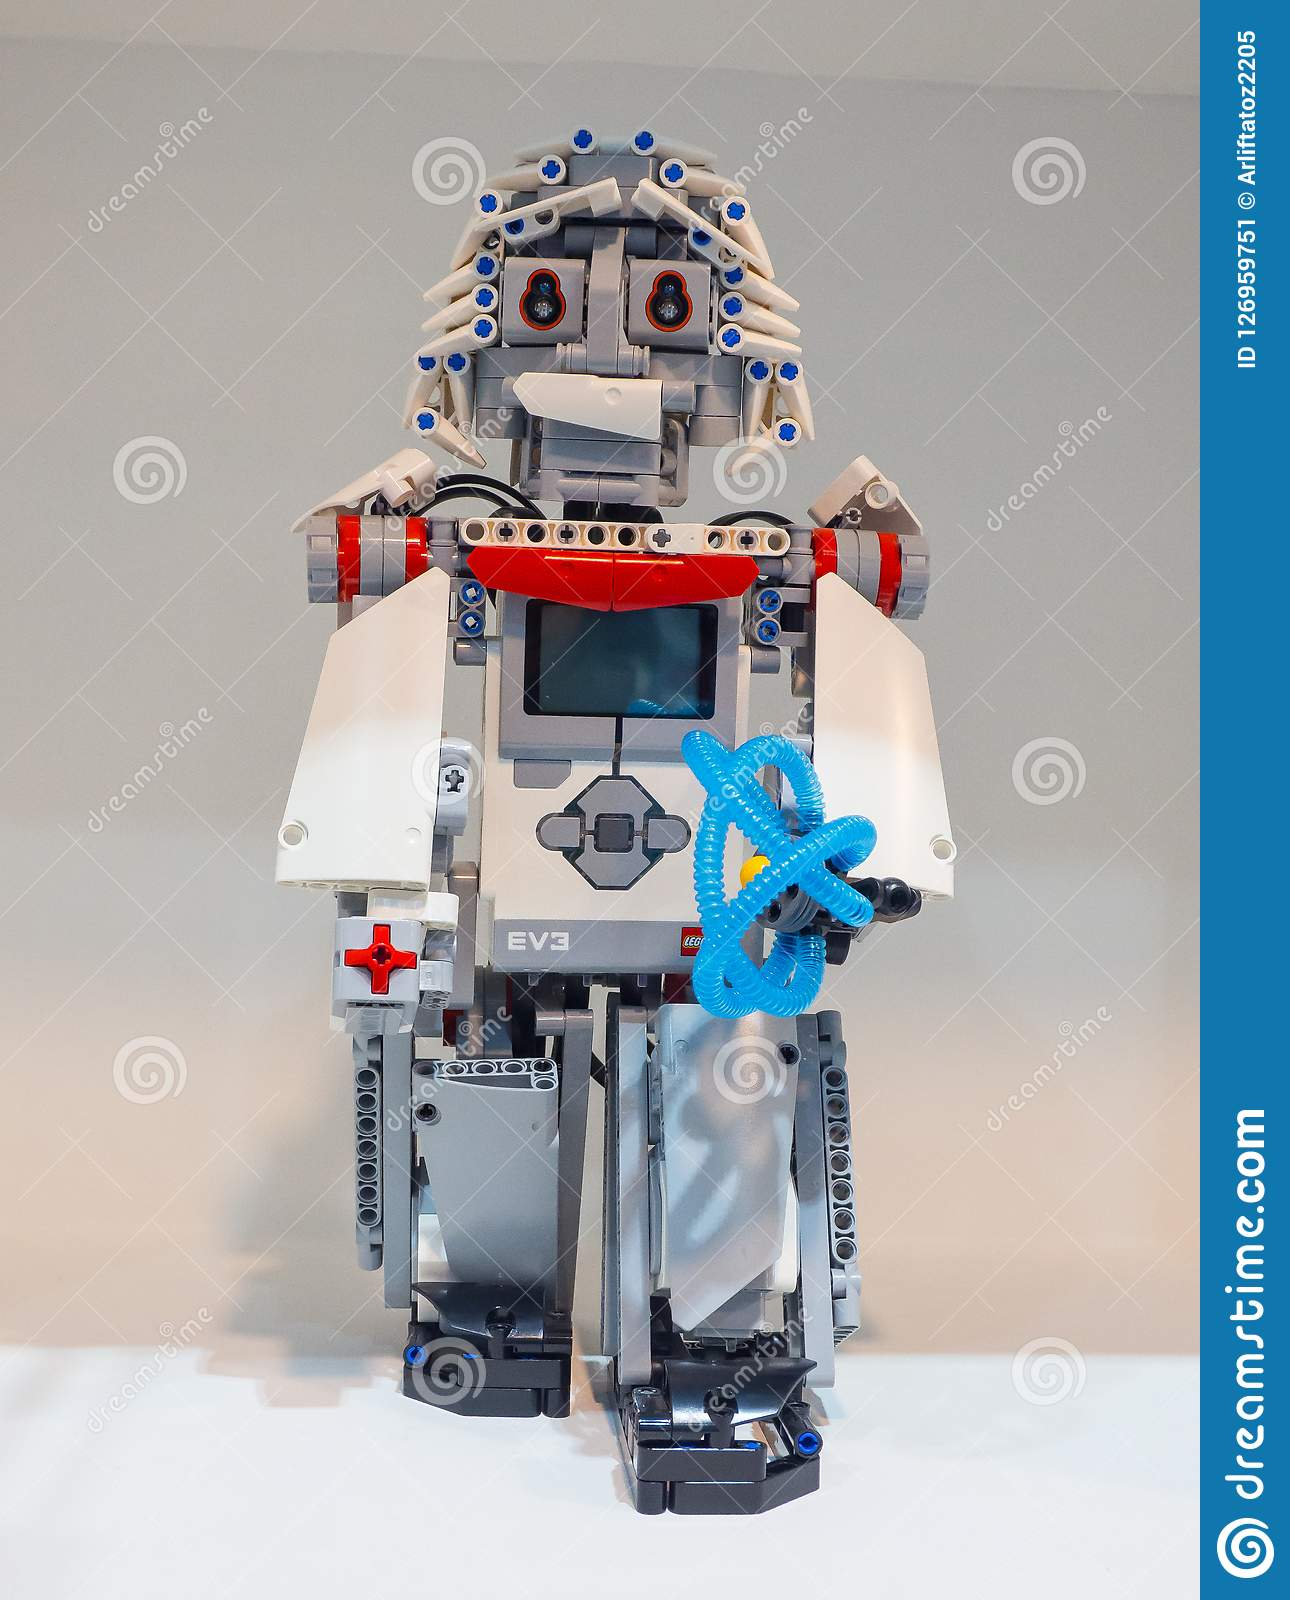 The Education Edition Of Lego Mindstorms EV3 Is The Third Generation